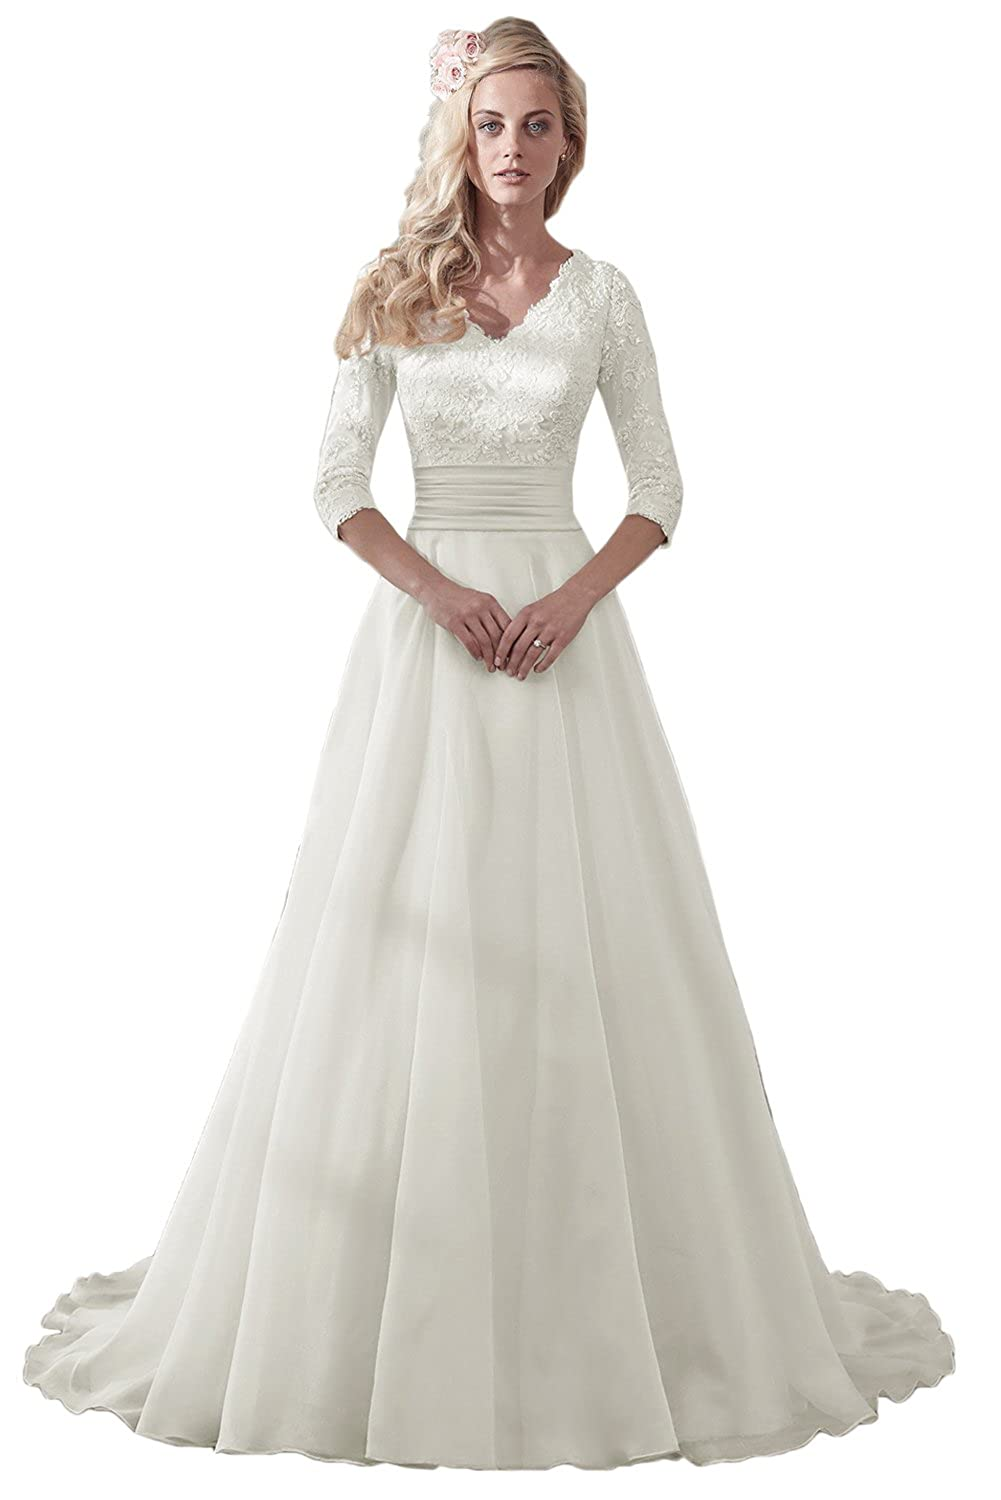 1940s Style Wedding Dresses | Classic Wedding Dresses MILANO BRIDE Modest Wedding Dress For Bride V-Neck Sleeves Organza Floral Lace $146.69 AT vintagedancer.com